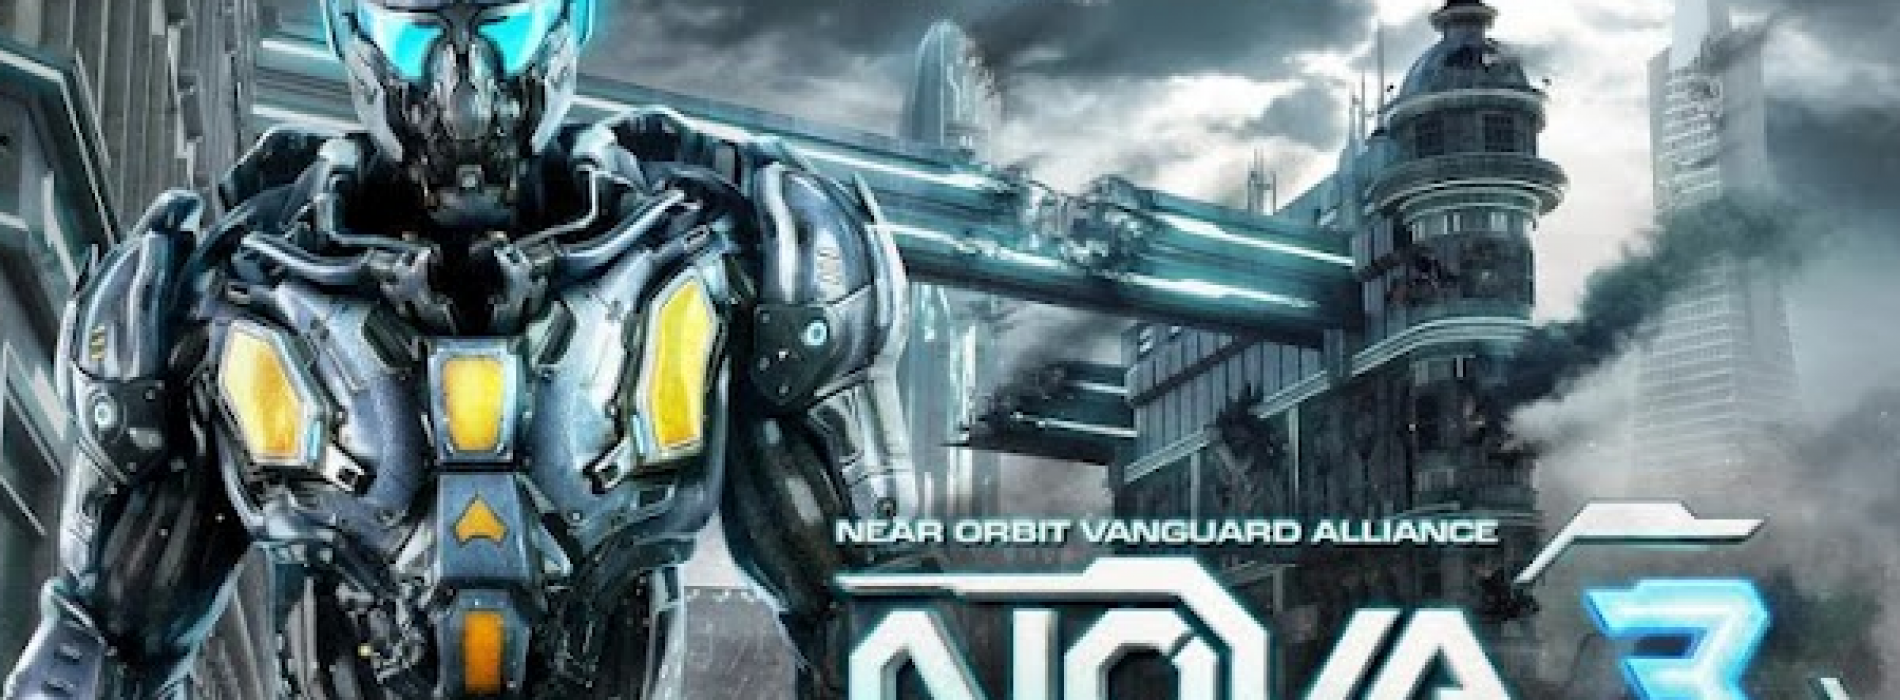 Gameloft's N.O.V.A. 3 shoots its way into Google Play